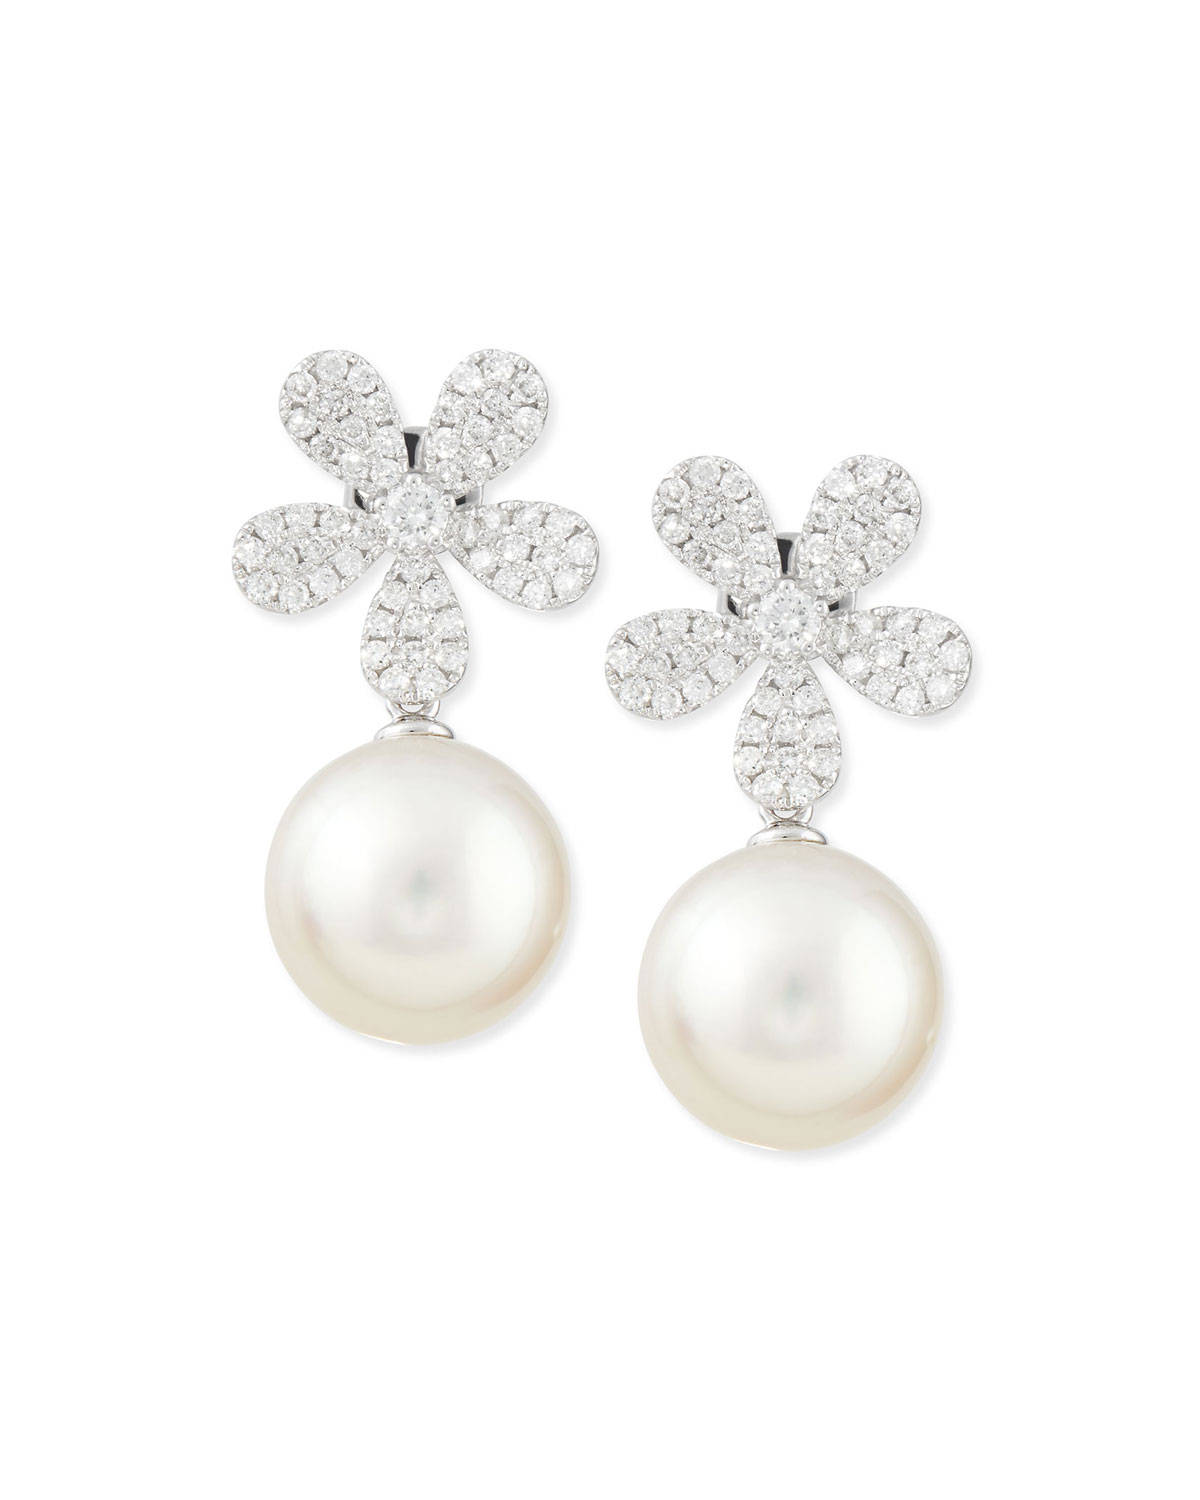 Belpearl Fleur White Diamond & Pearl Earrings